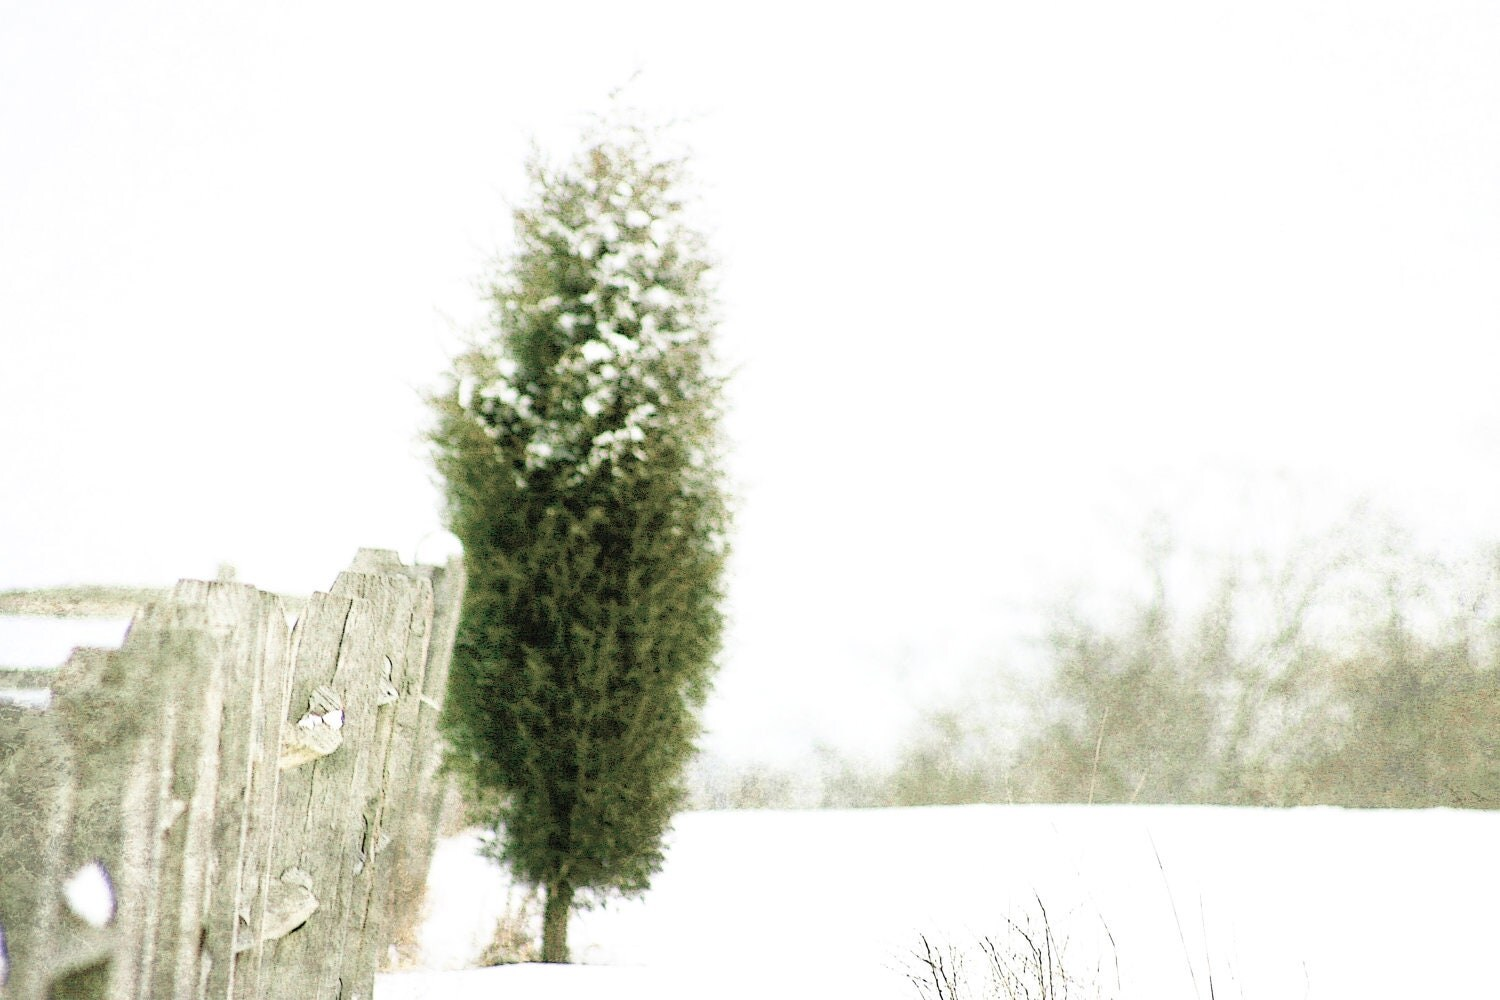 BOGO SALE, Winter Photography, white, snow, pale green, Snow Fence, nature fine art print 8x12 - moonlightphotography